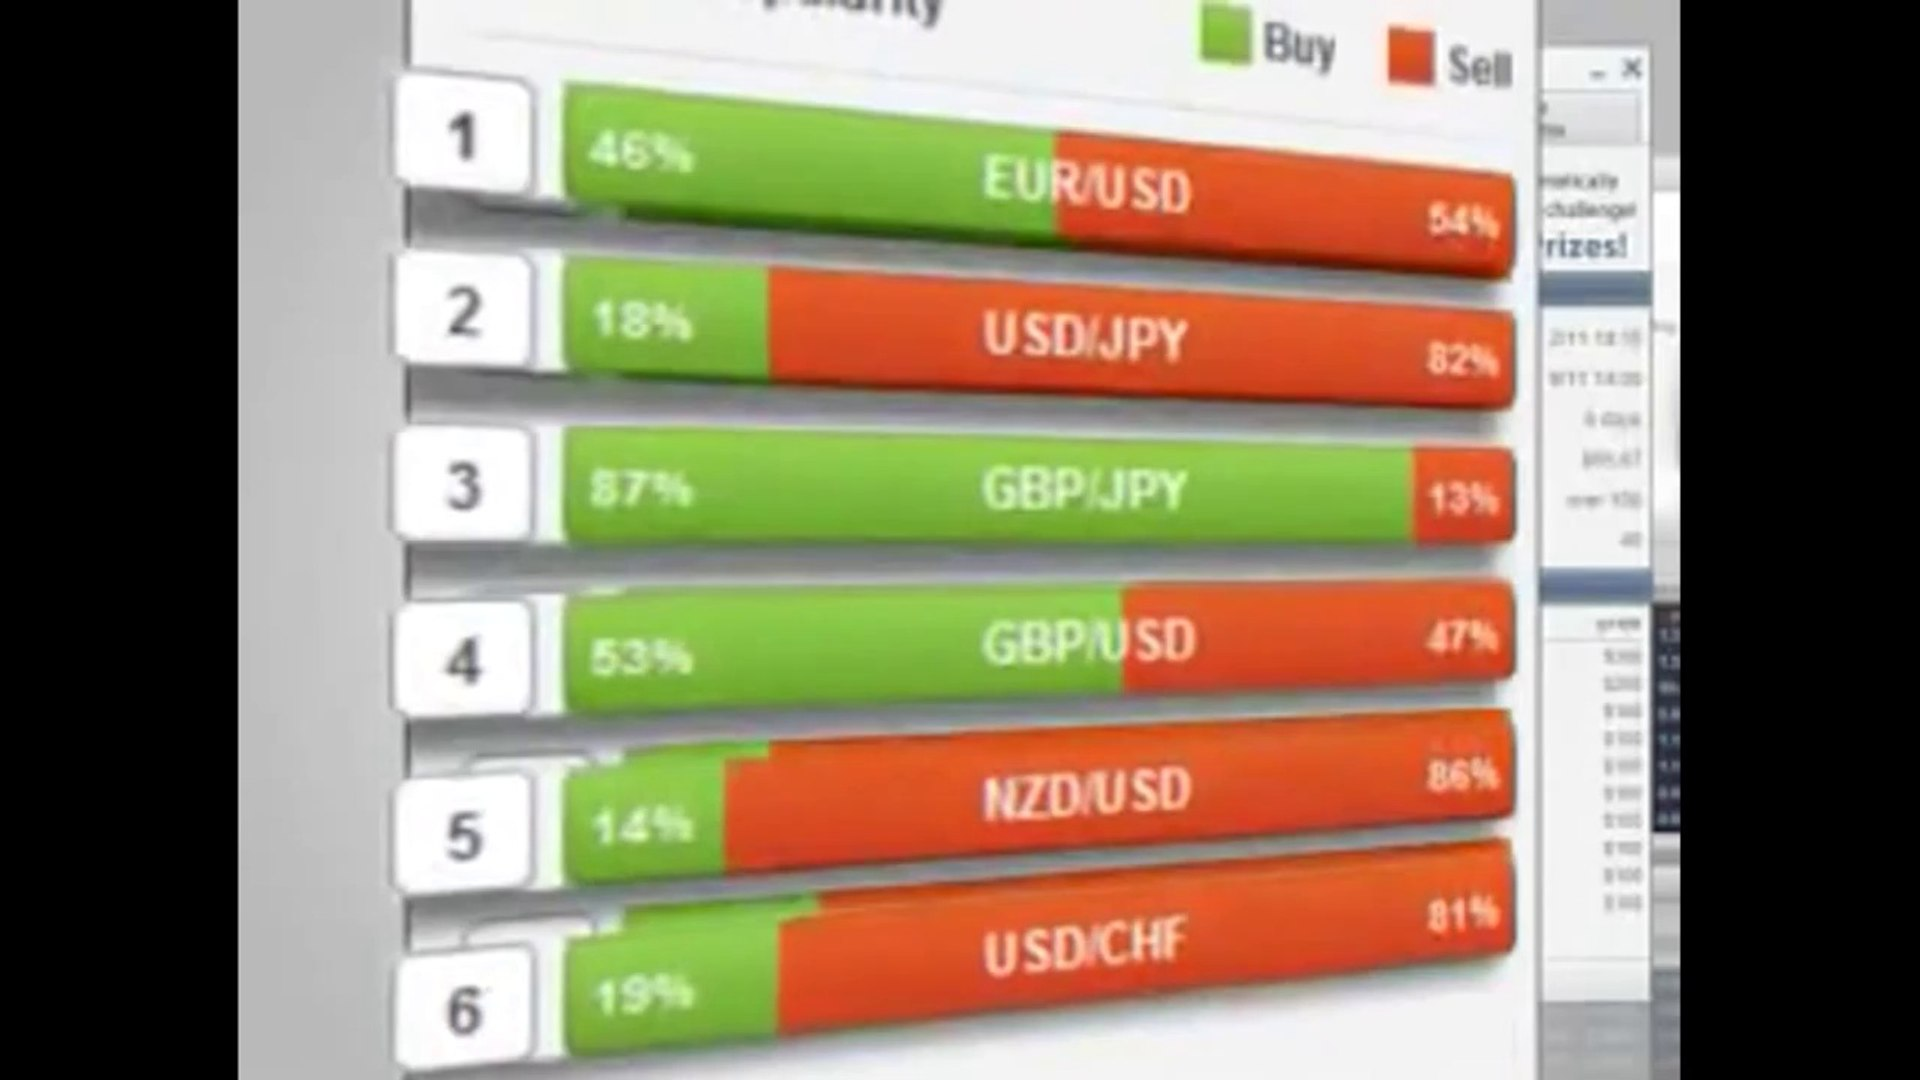 Forex trading for beginners - Forex trading system